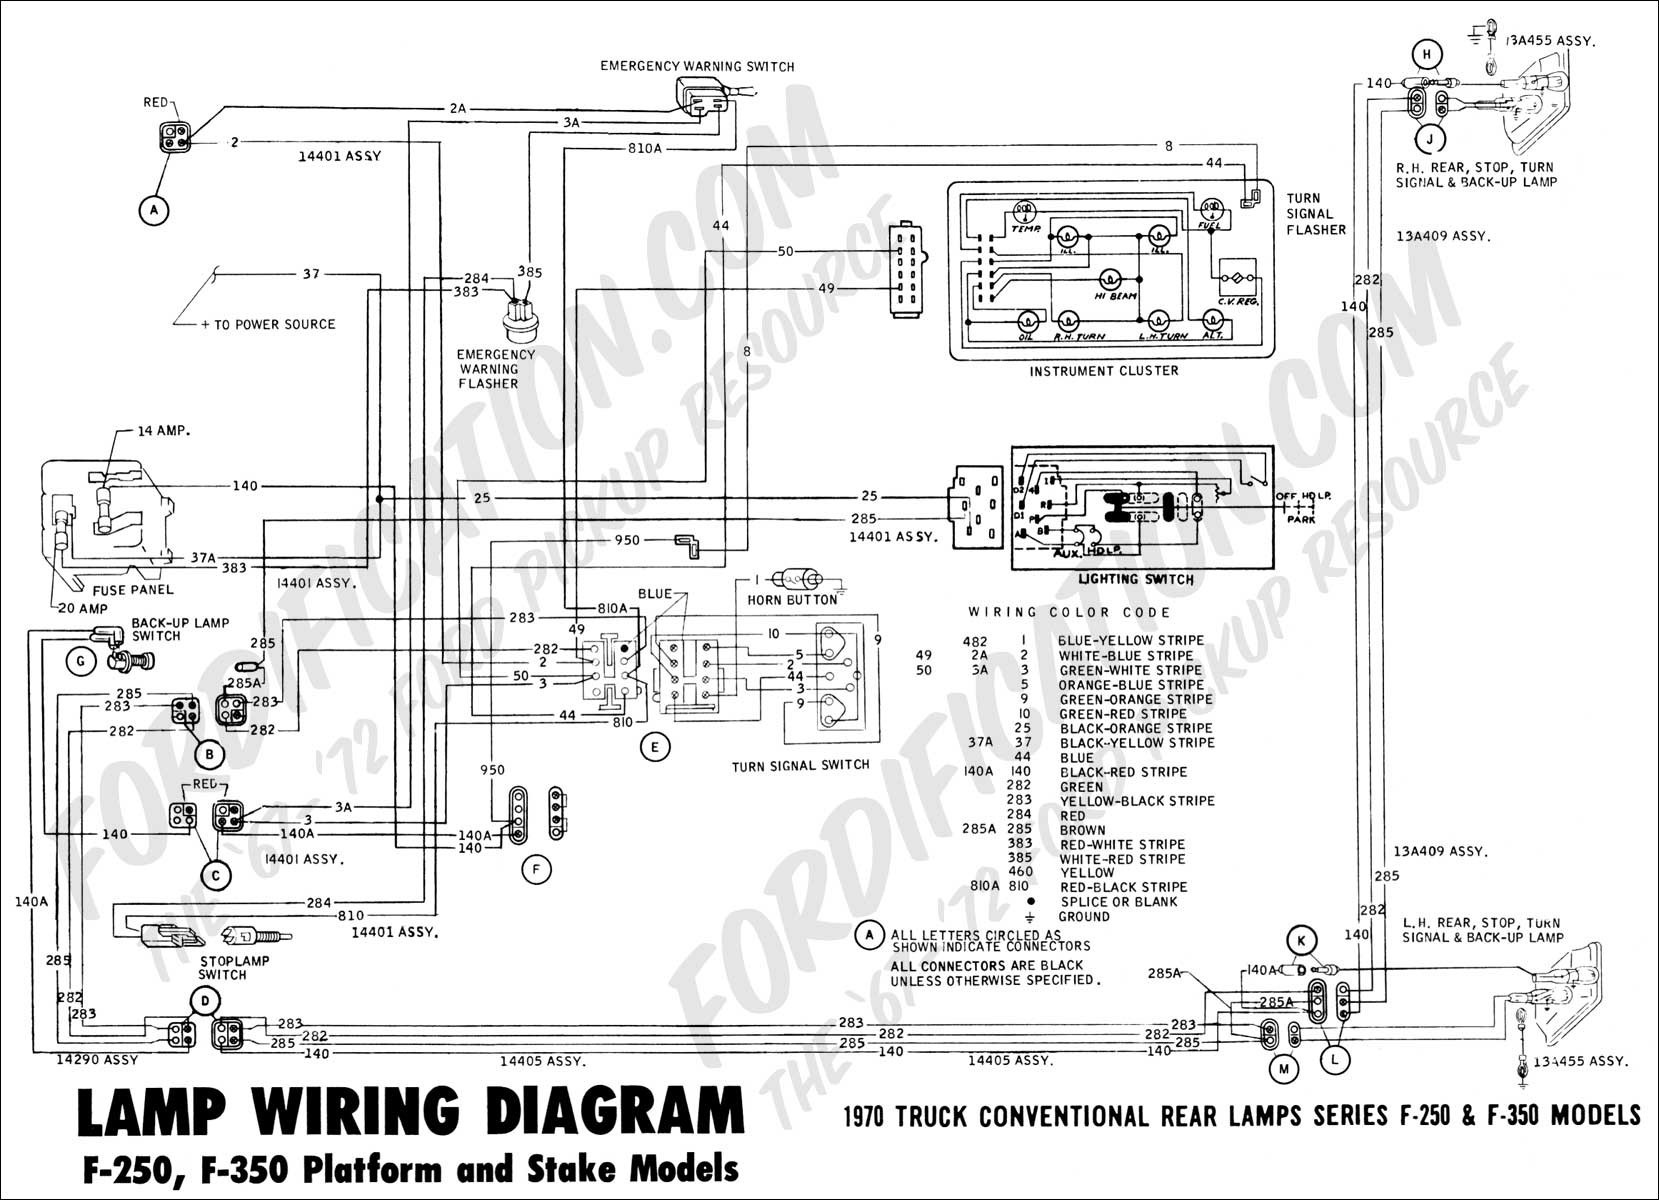 ... F250 Wiring Diagram Wiring Info • Of Tail. Related Post